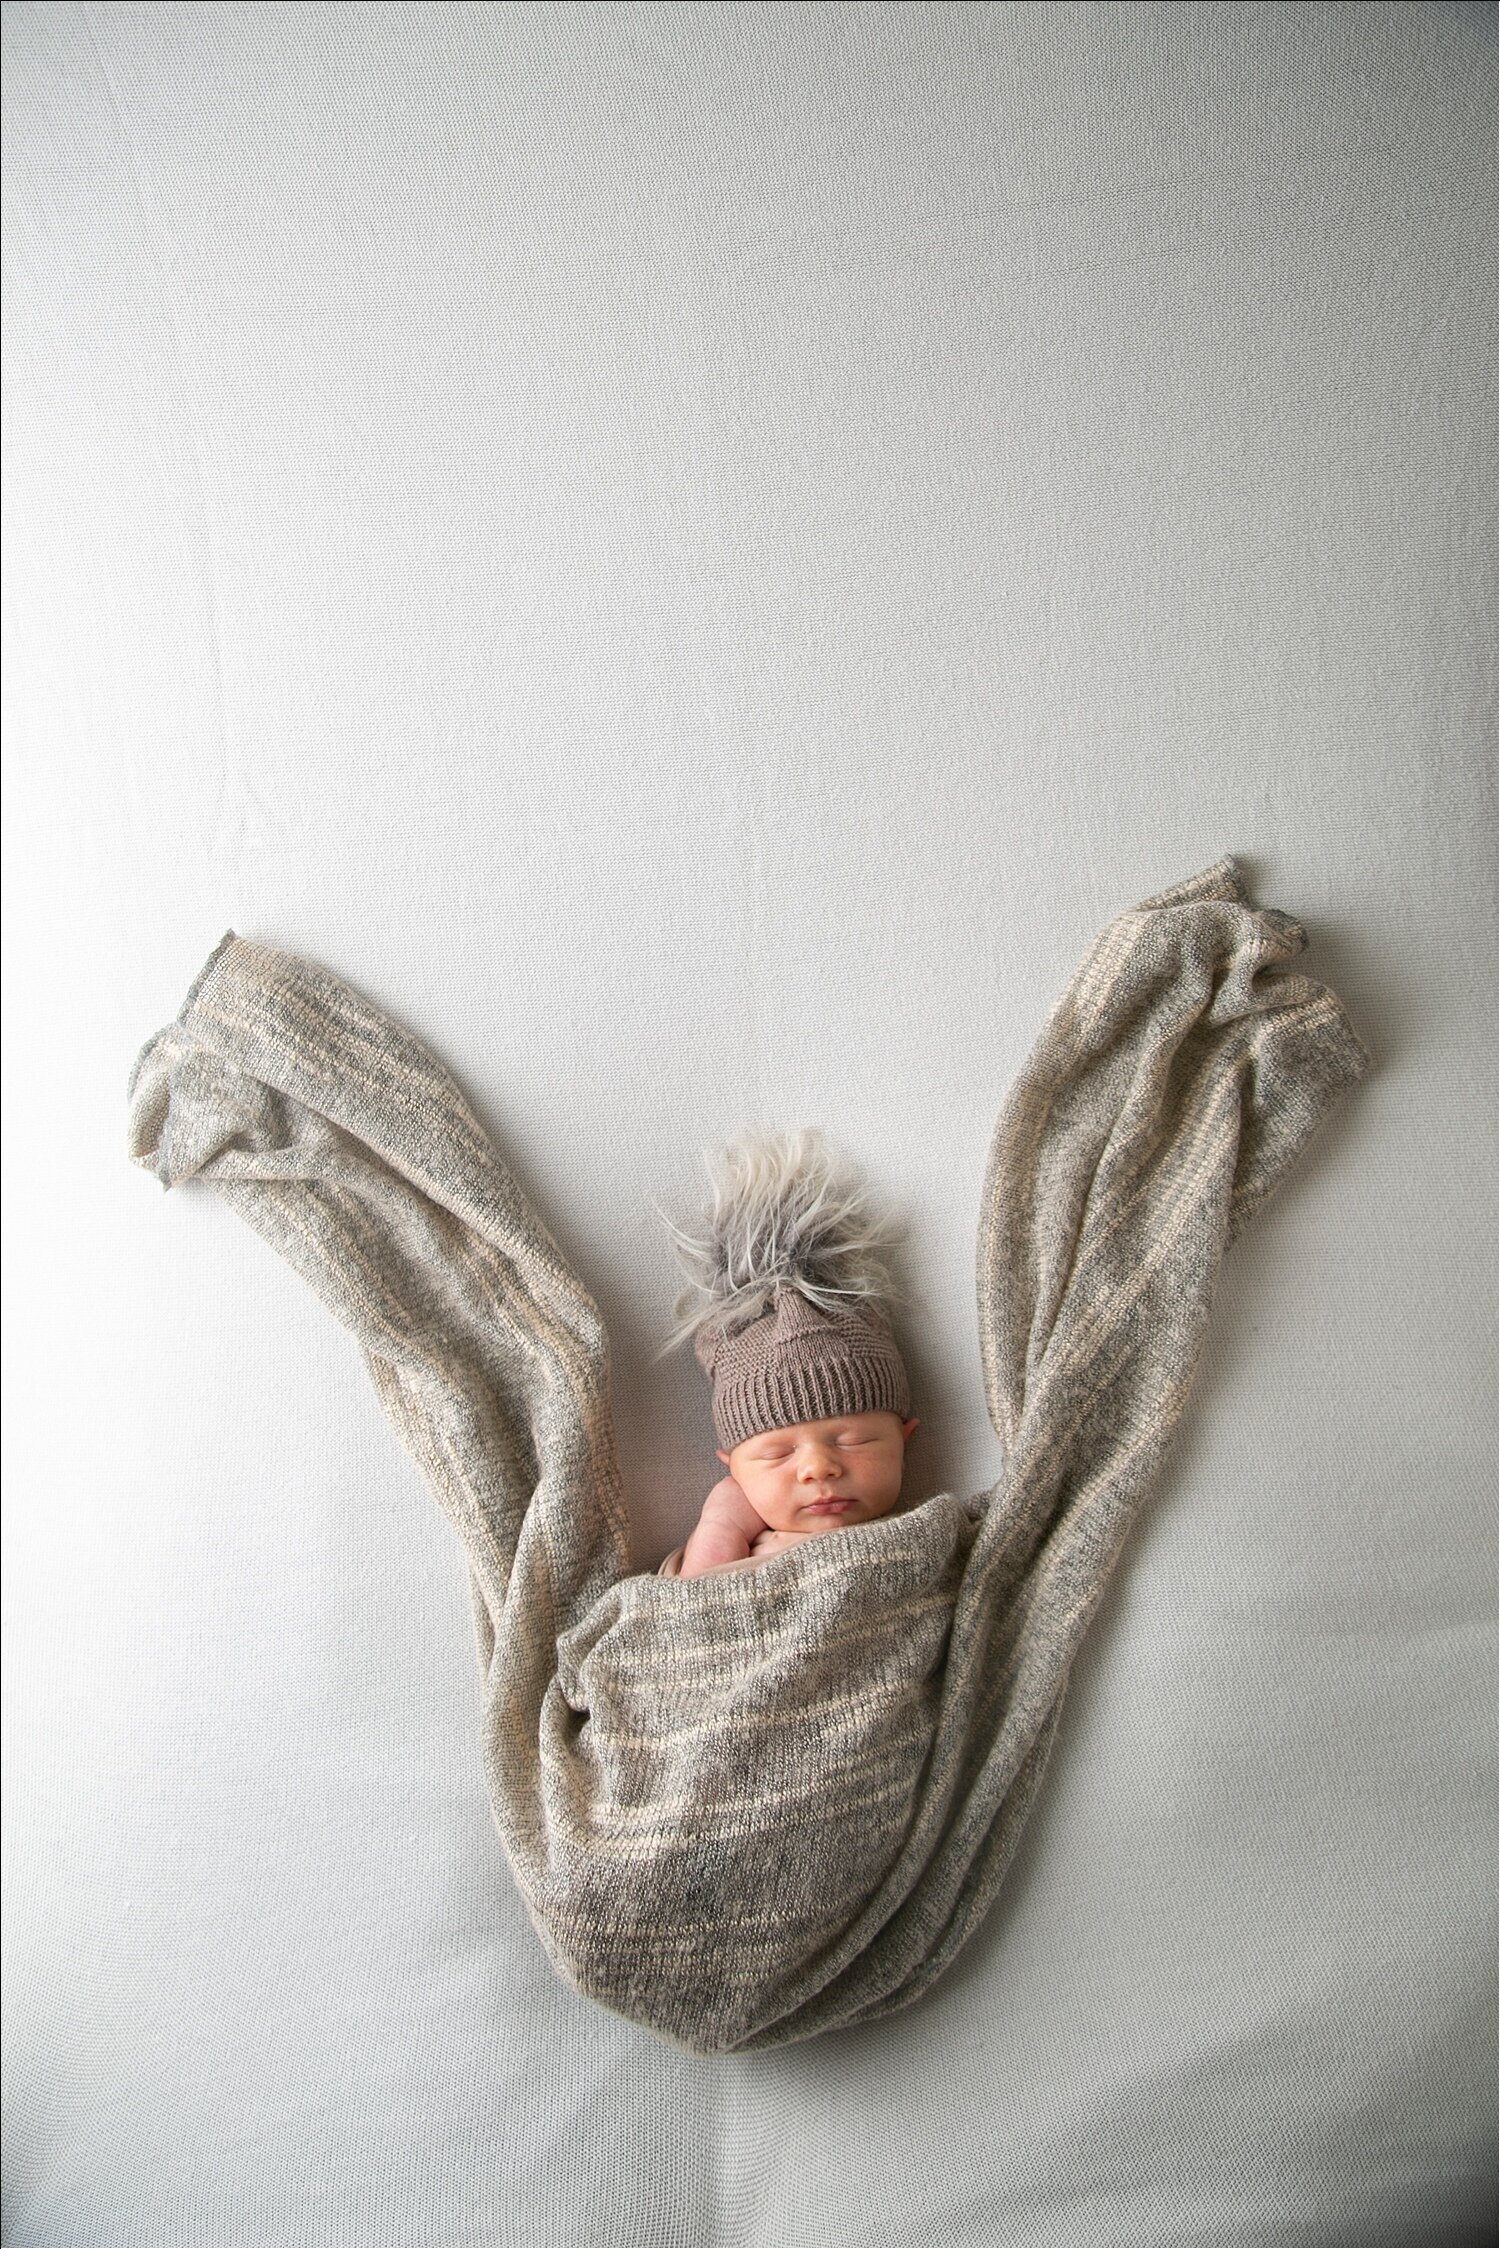 new-york-newborn-photographer-bw_040_WEB